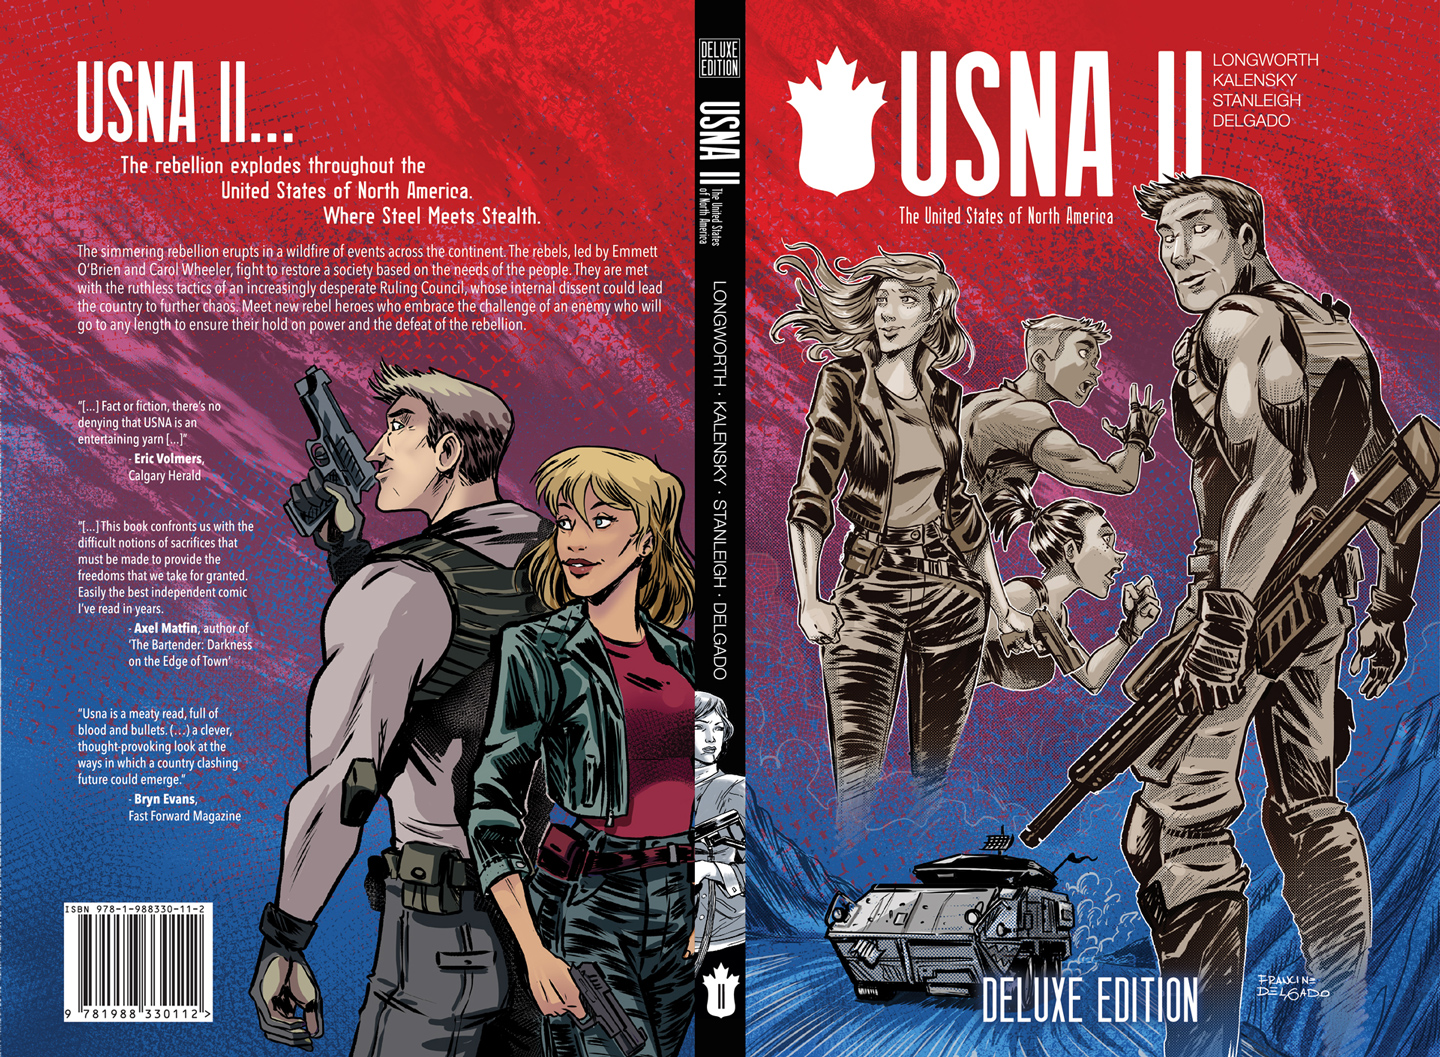 USNA_COVER_HalfInch_SPINE_OPT_WEB.jpg